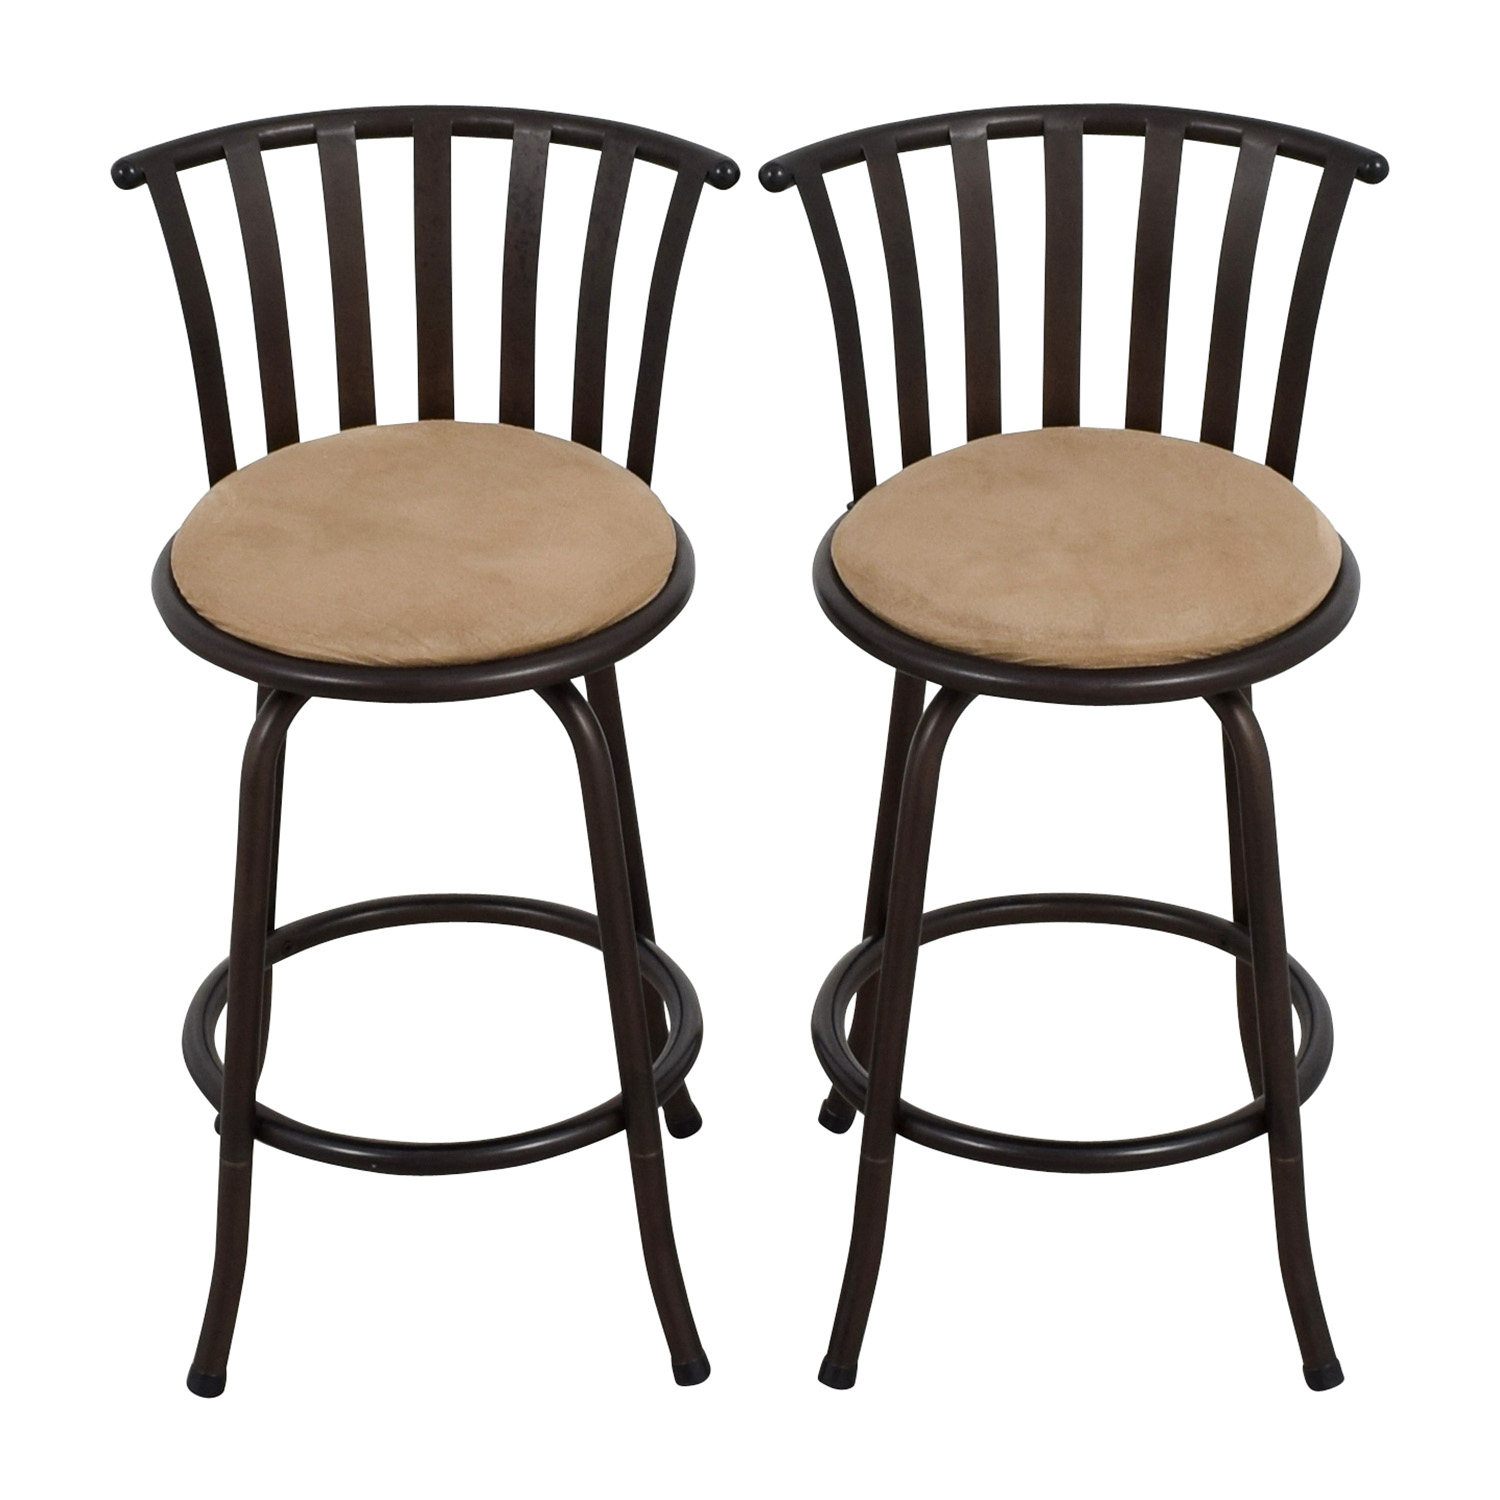 Chairs From Target 63 Off Target Target Metal Barstools Chairs